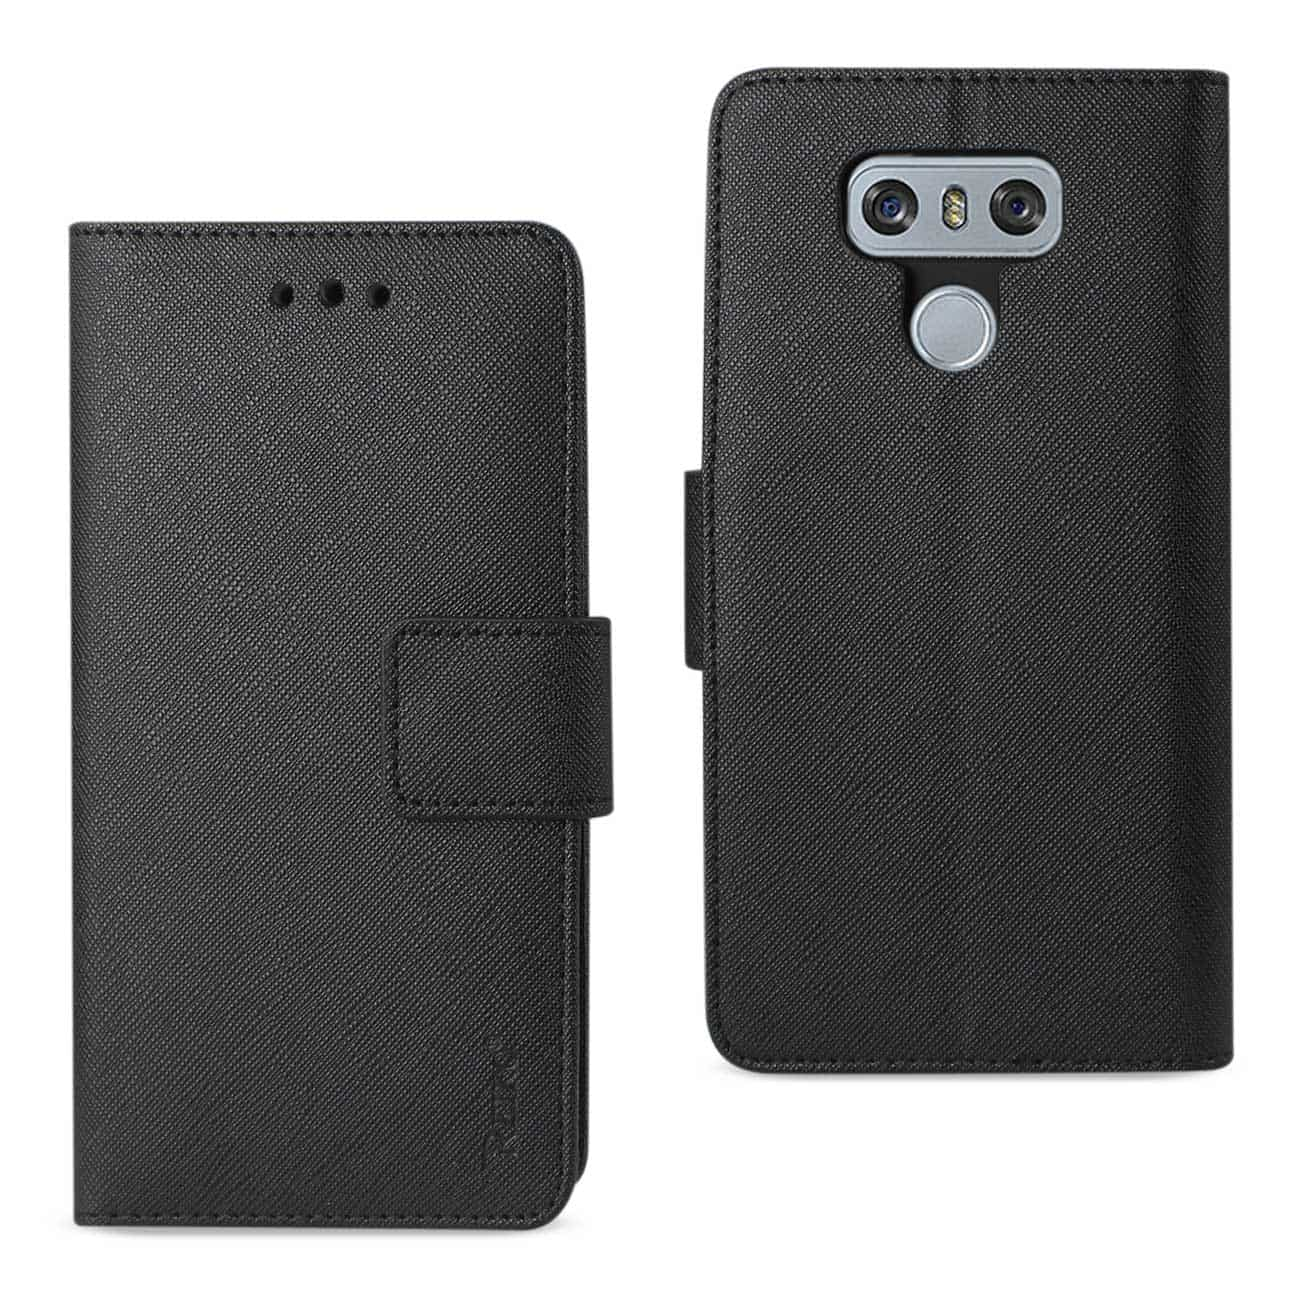 LG G6 3-IN-1 WALLET CASE IN BLACK